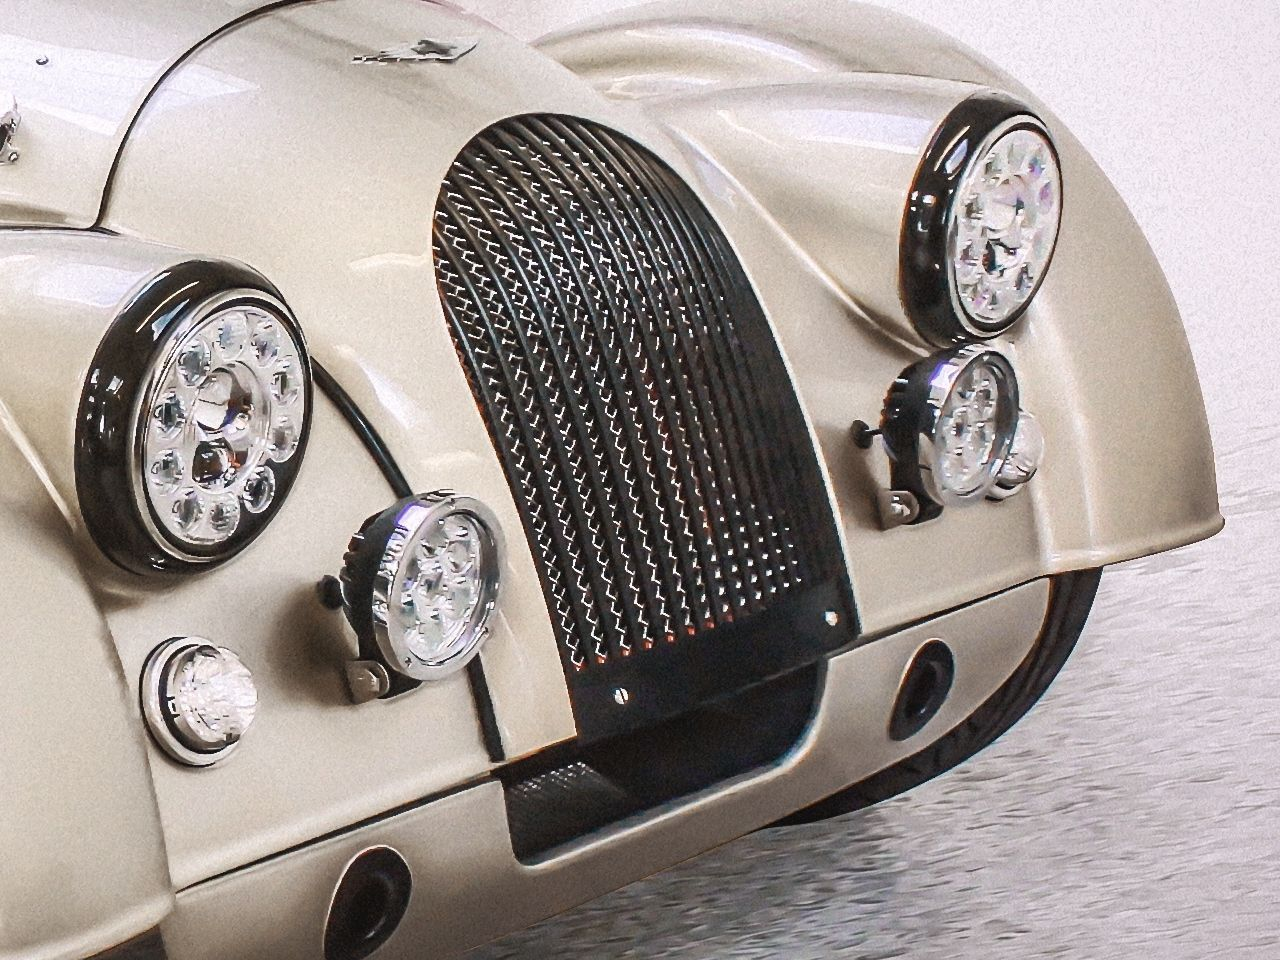 morgan-plus-4-ar-p4-by-ar-motorsport-0-100-prezzo-price-5